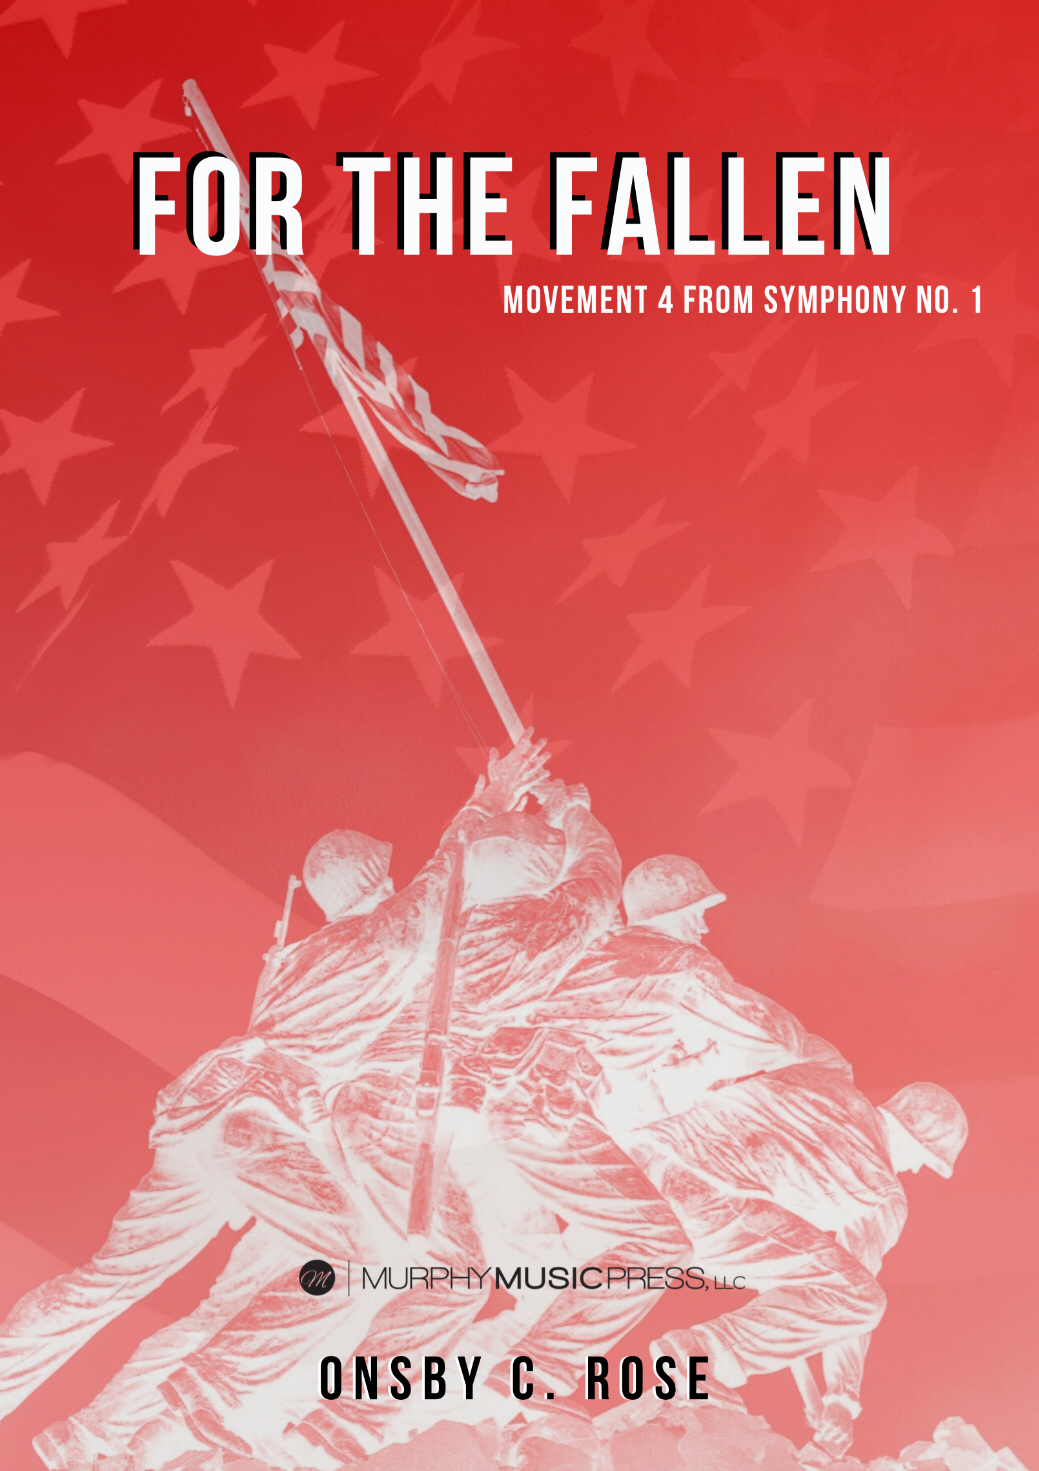 For The Fallen by Onsby C. Rose